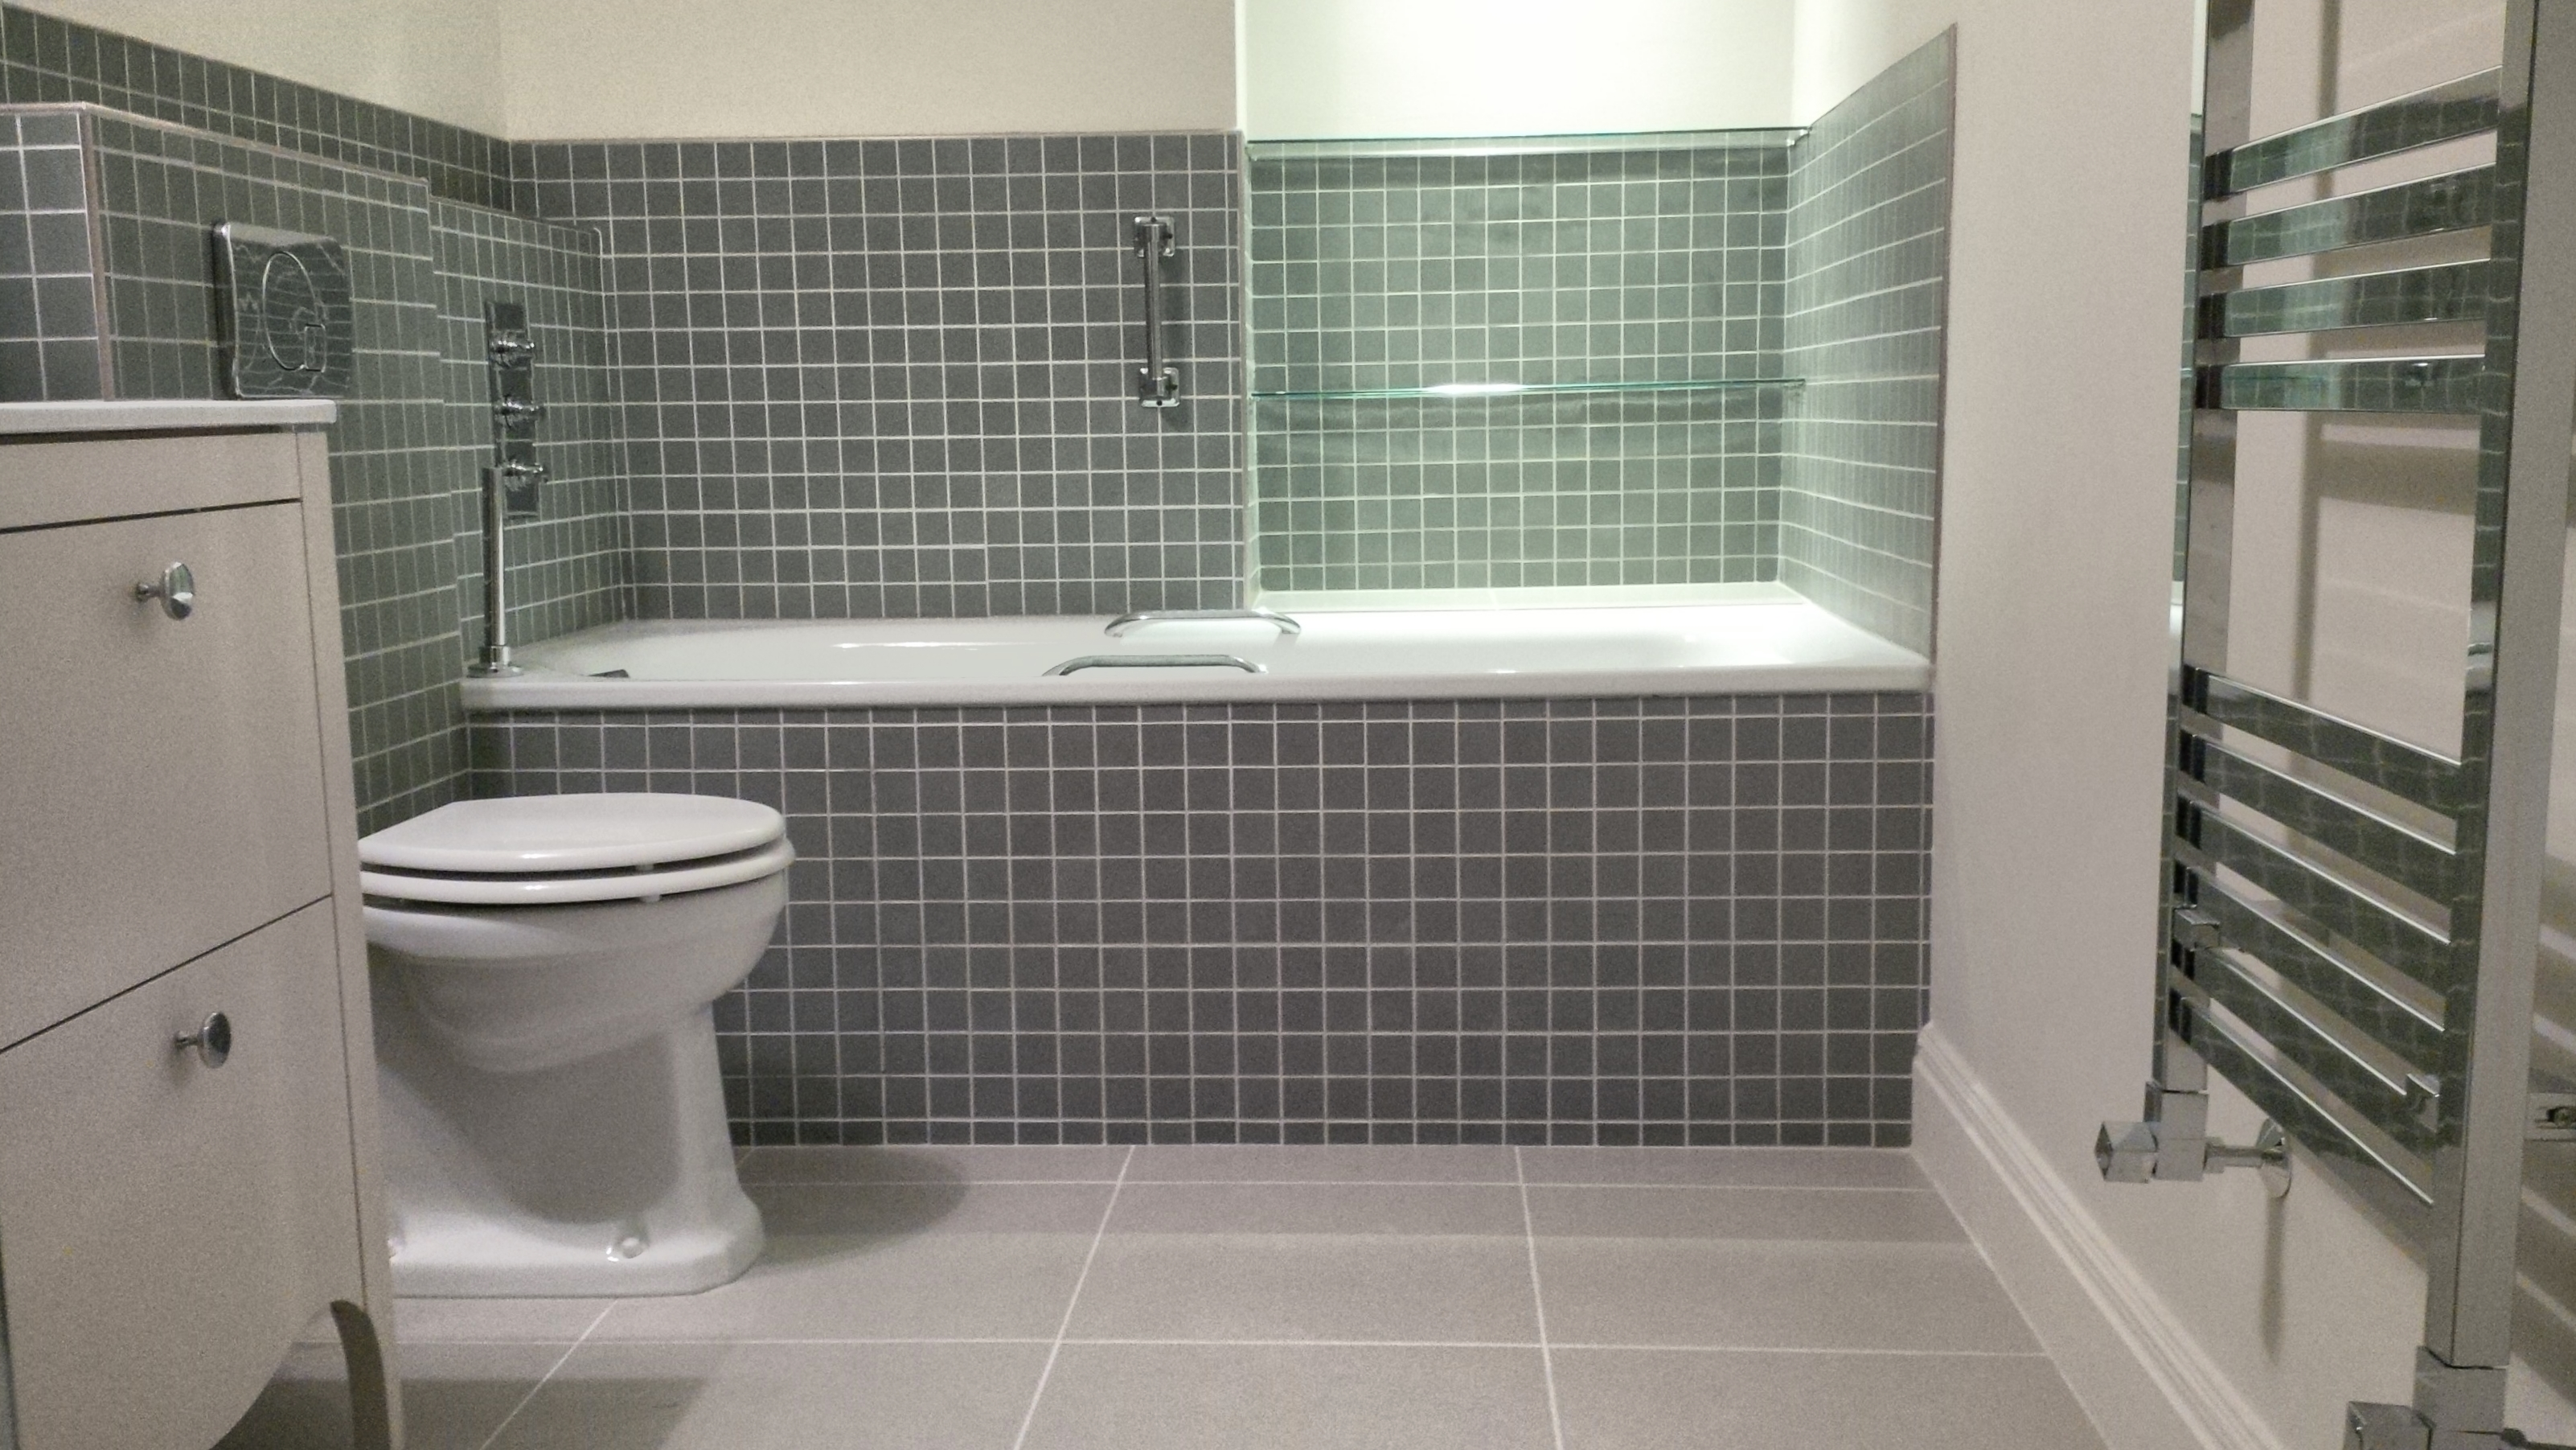 London bathrooms london bathrooms Bathroom design company london